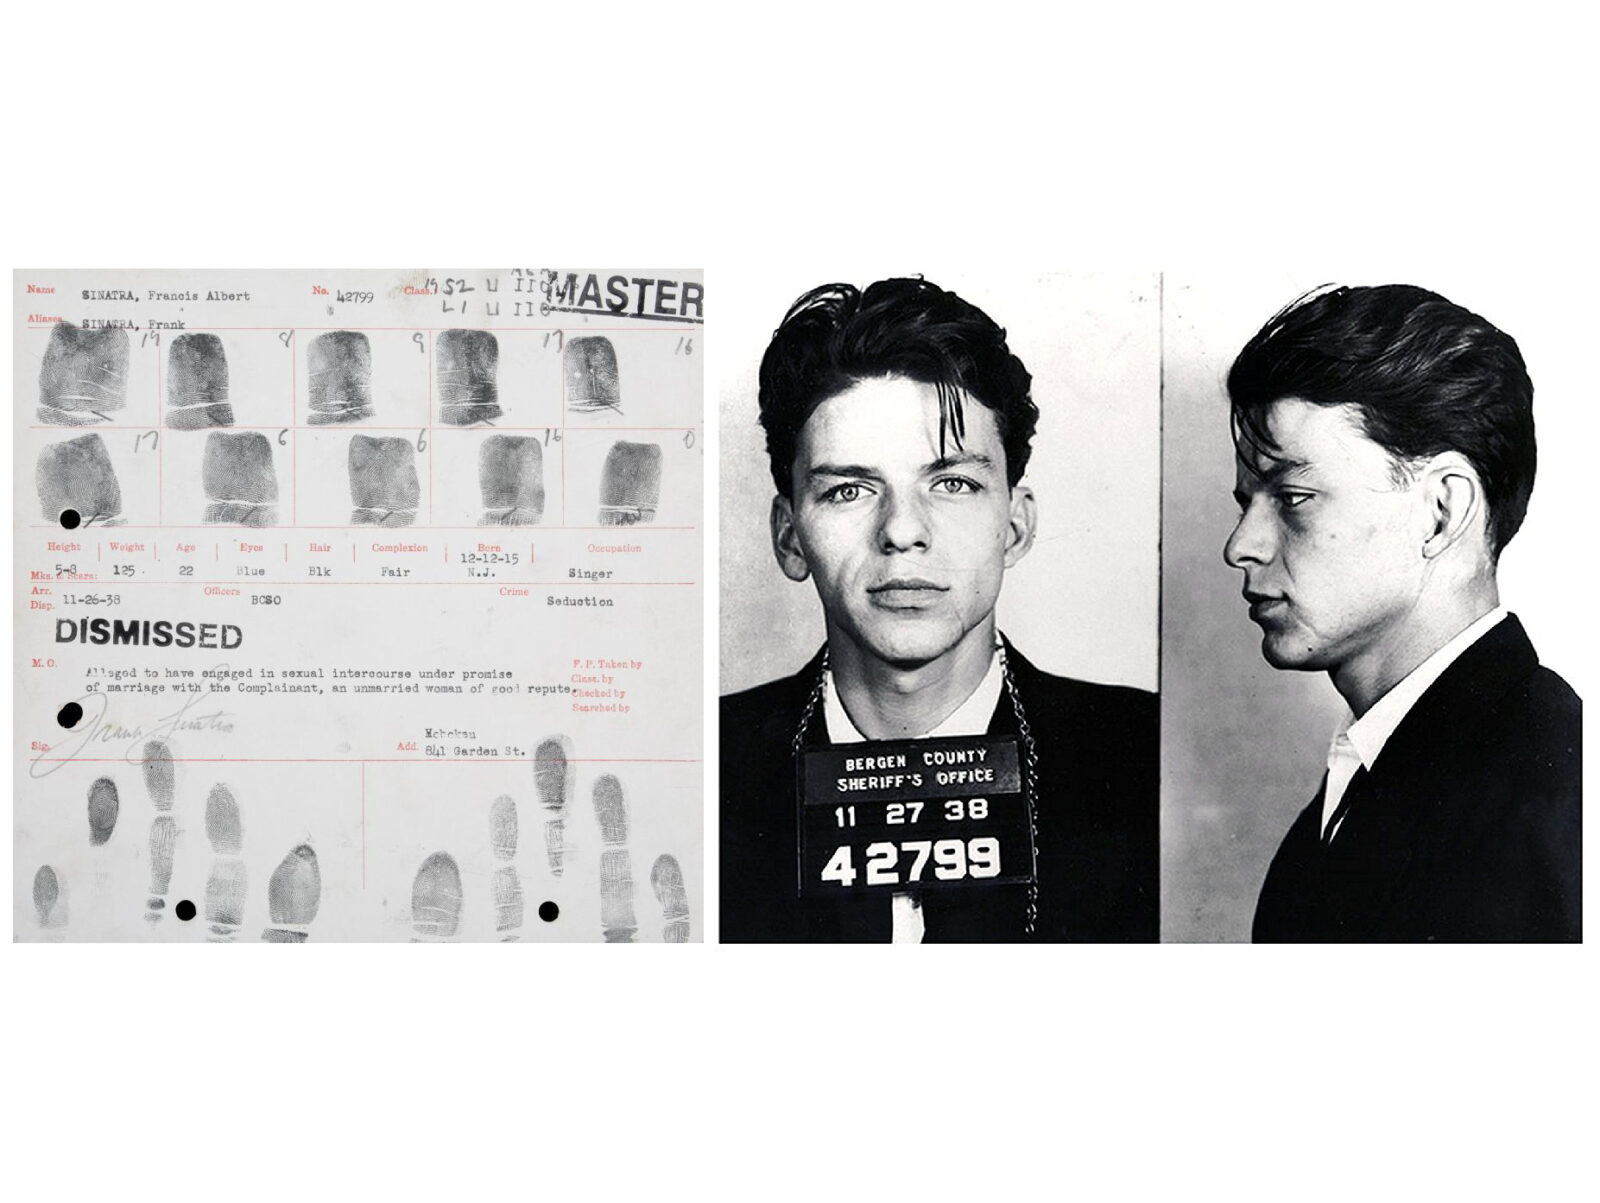 Frank Sinatra's Arrest Fingerprint Records And Mugshot